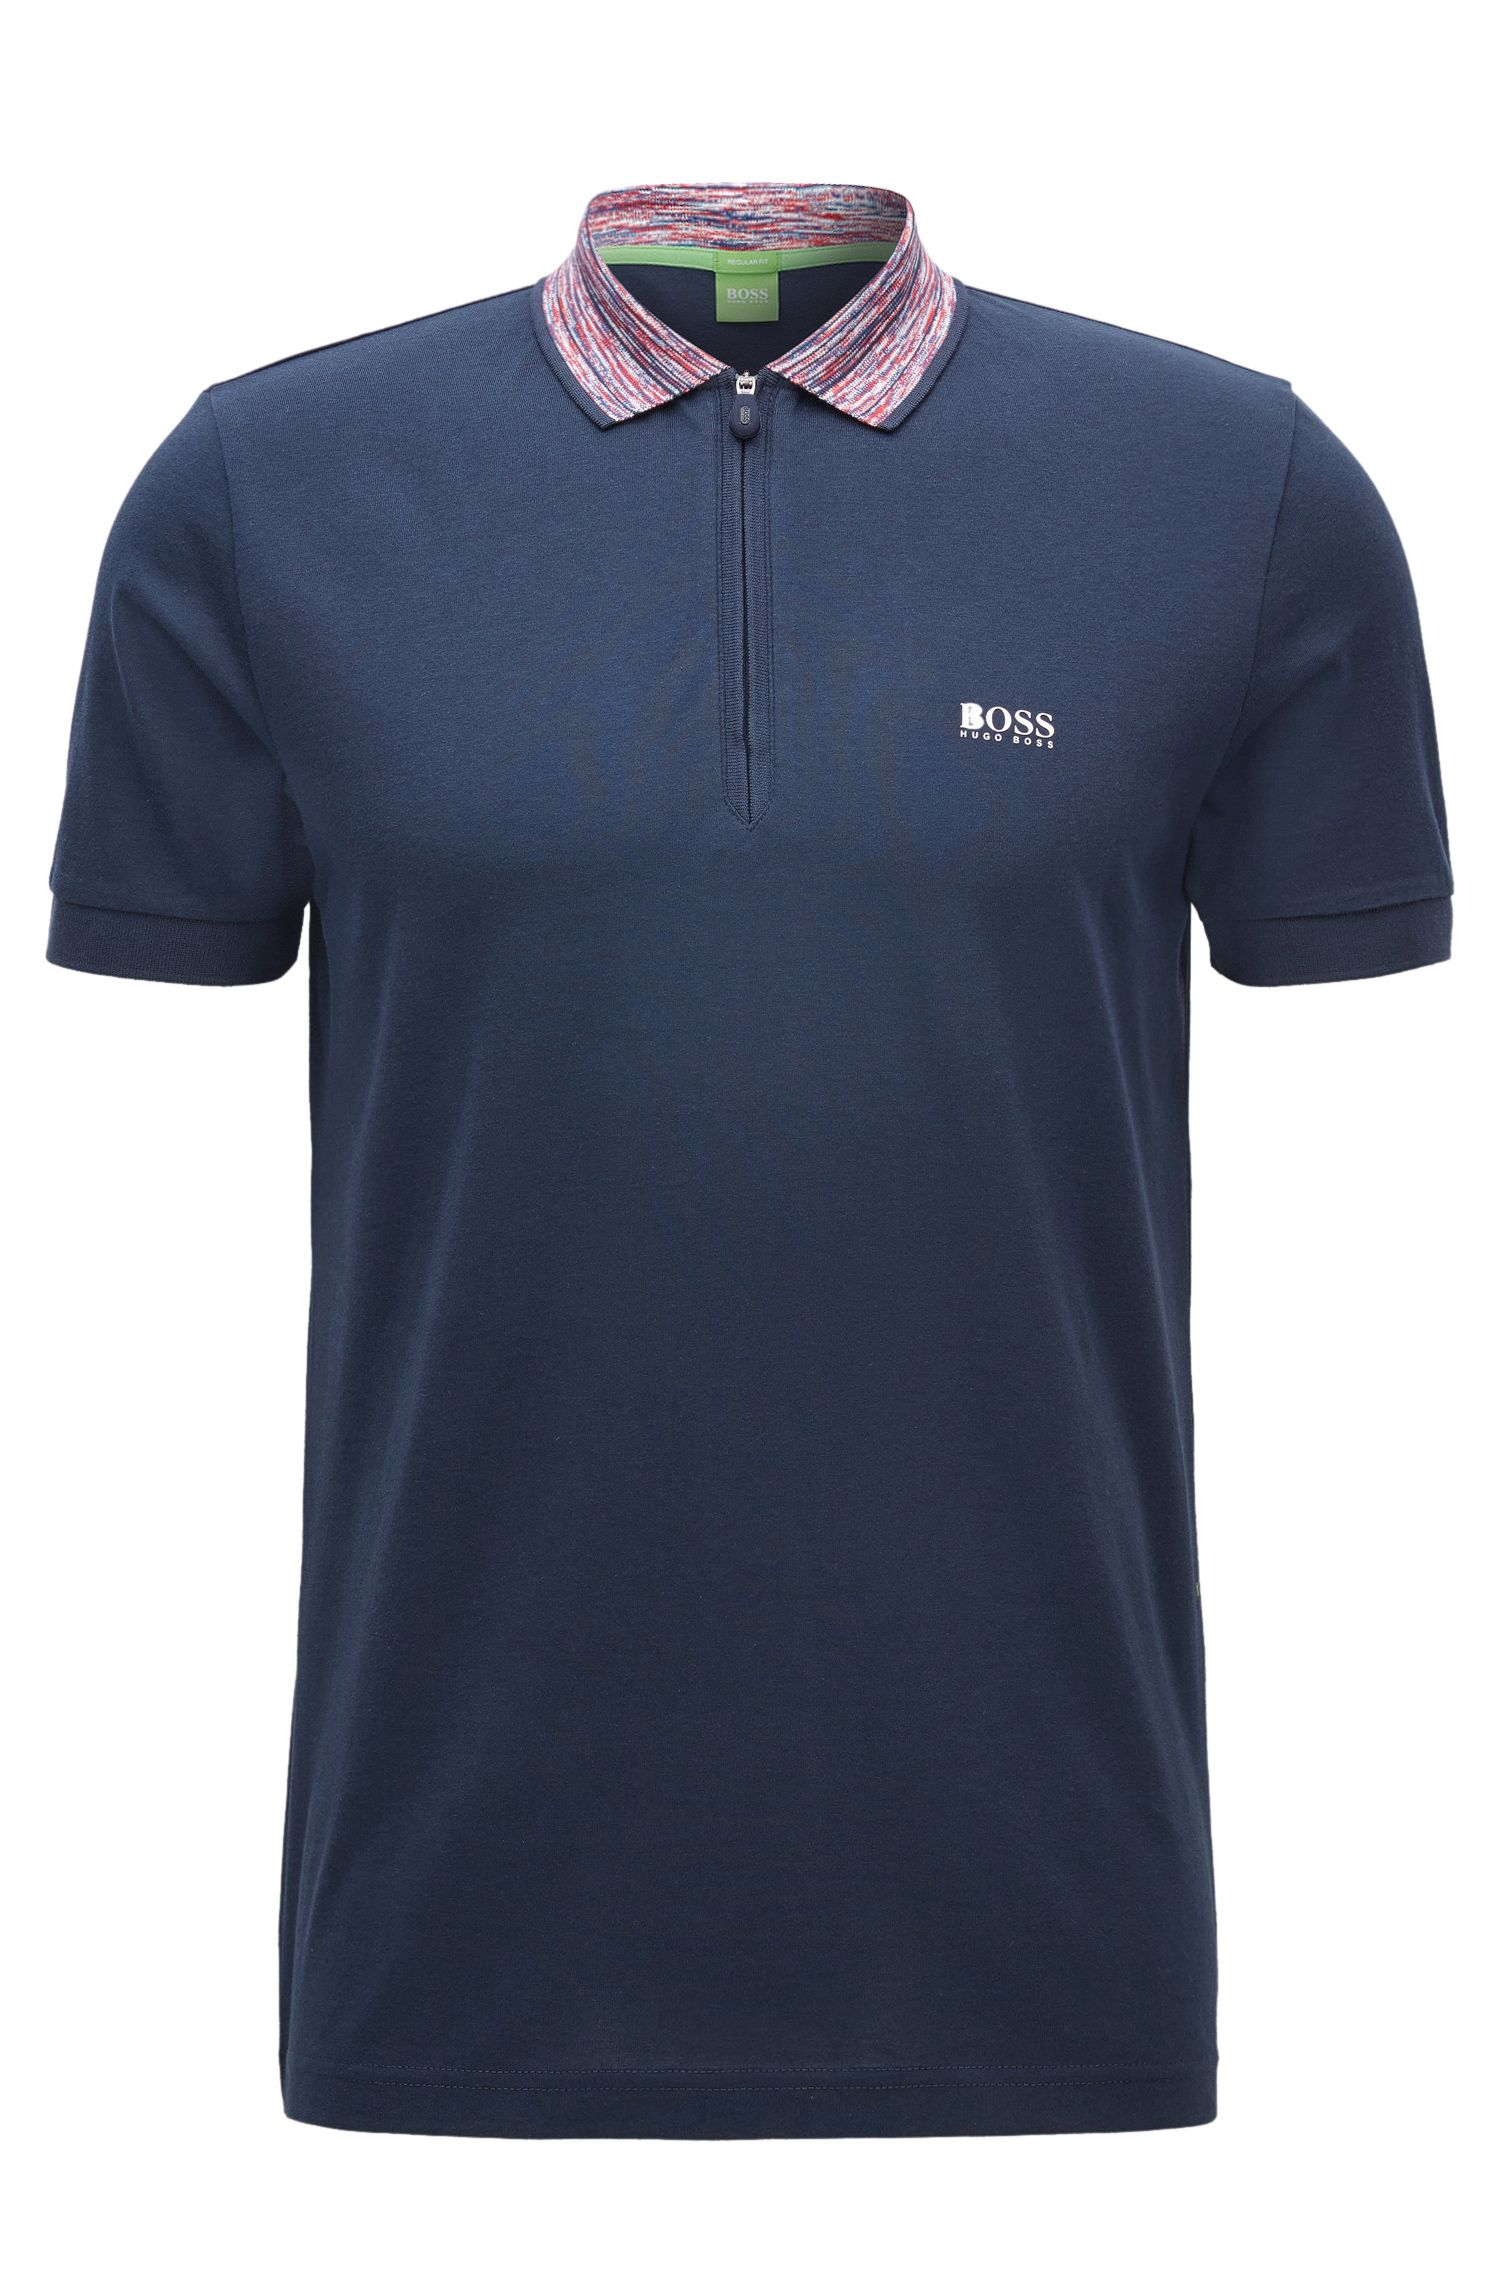 Plated-fabric polo shirt in a regular fit